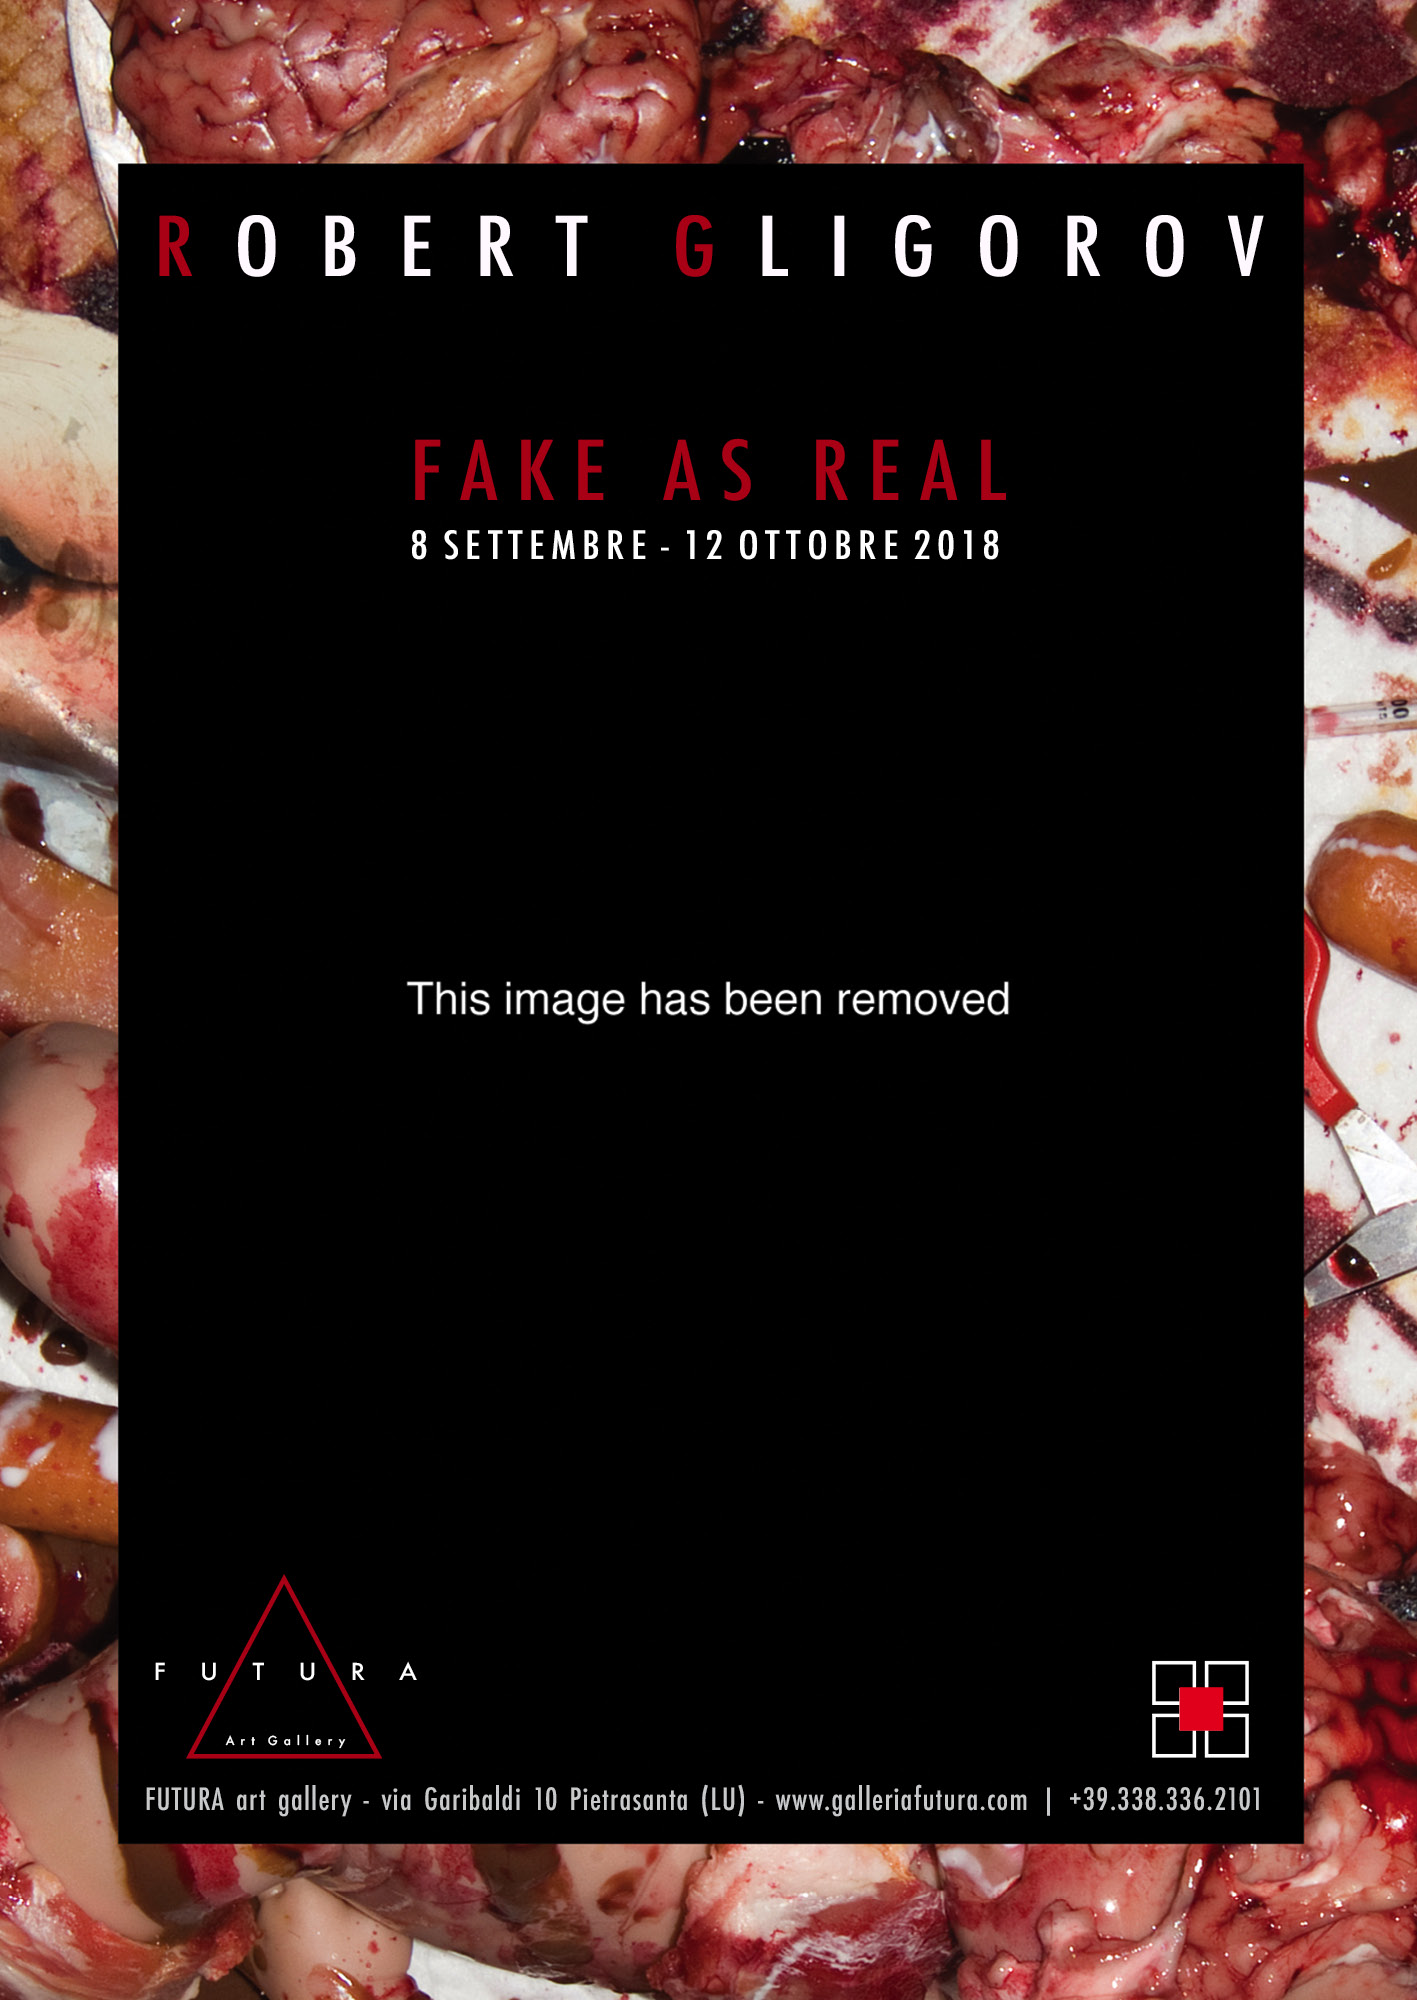 Fake as Real - Robert Gligorov